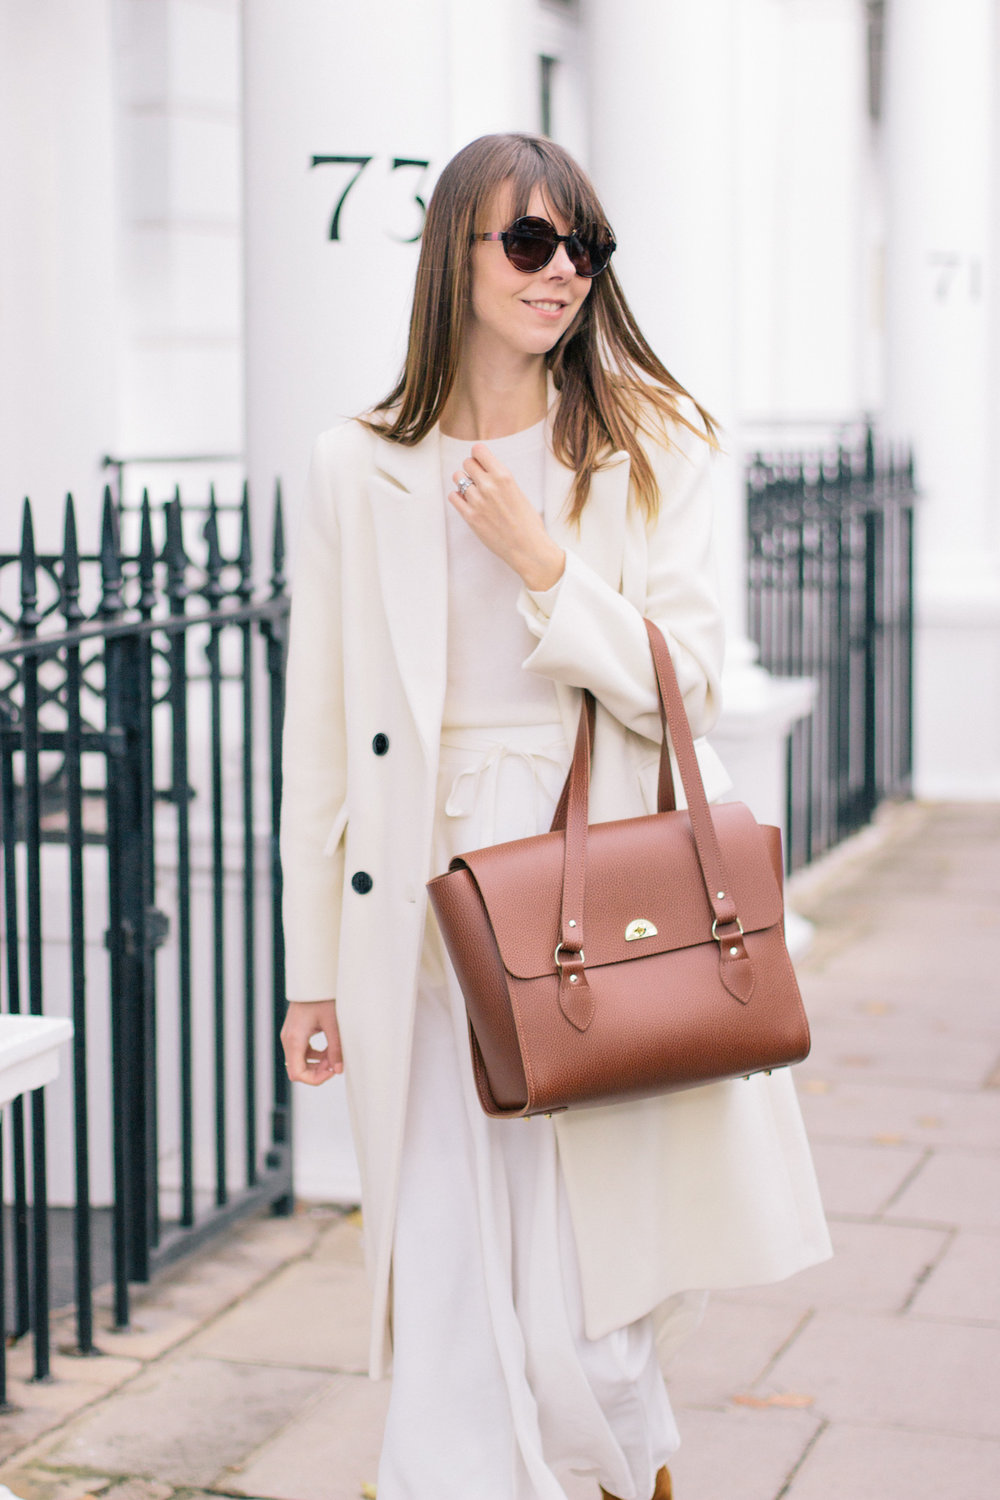 Cambridge Satchel Company Emily Bag Sundays and Somedays-7.jpg